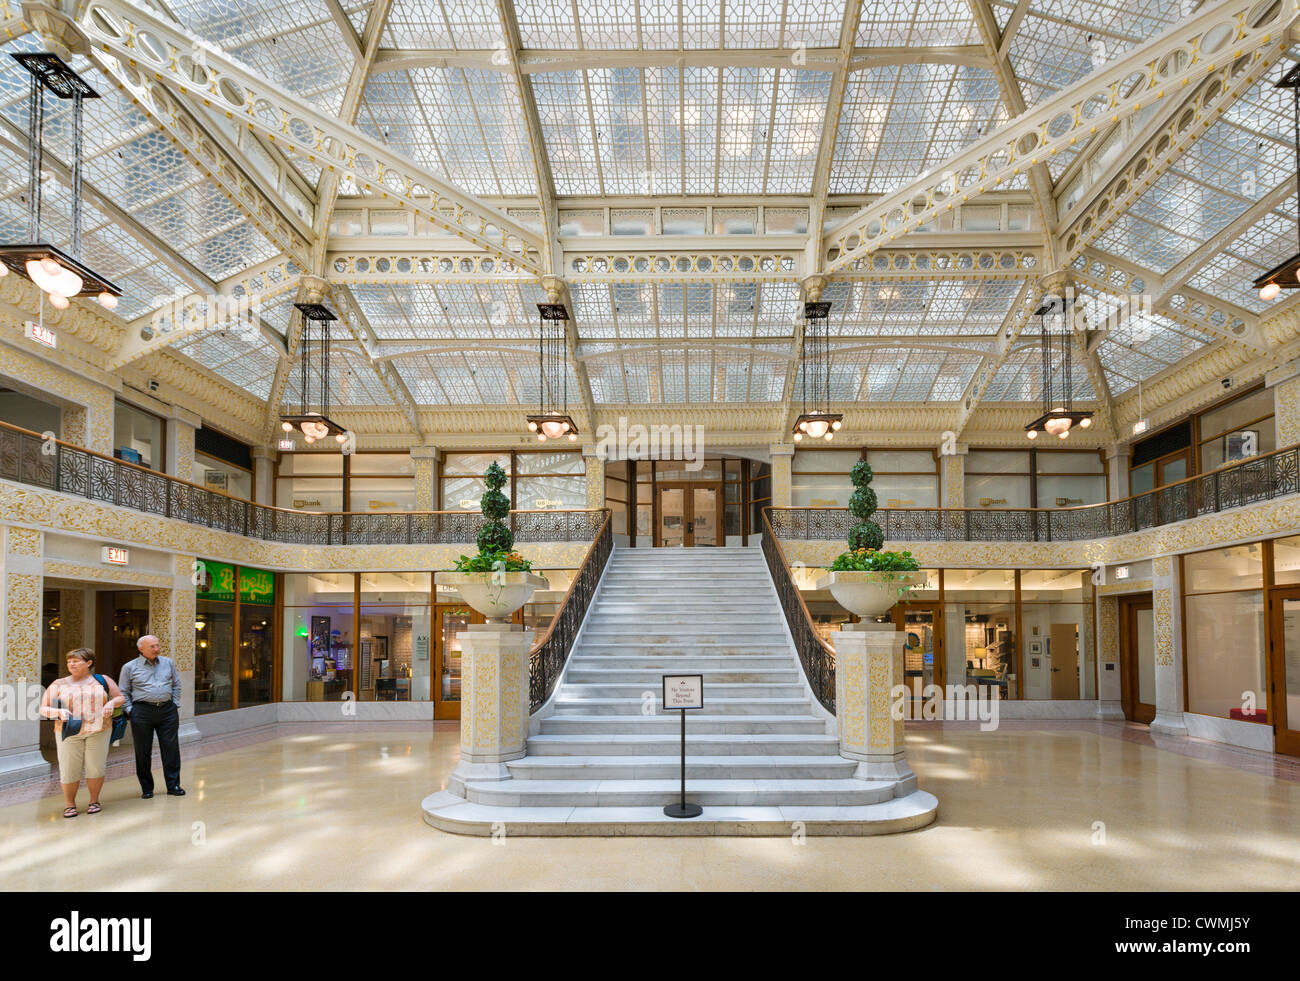 Frank Lloyd Wright designed lobby of The Rookery building on La Salle Street in the Loop district, Chicago, Illinois, Stock Photo